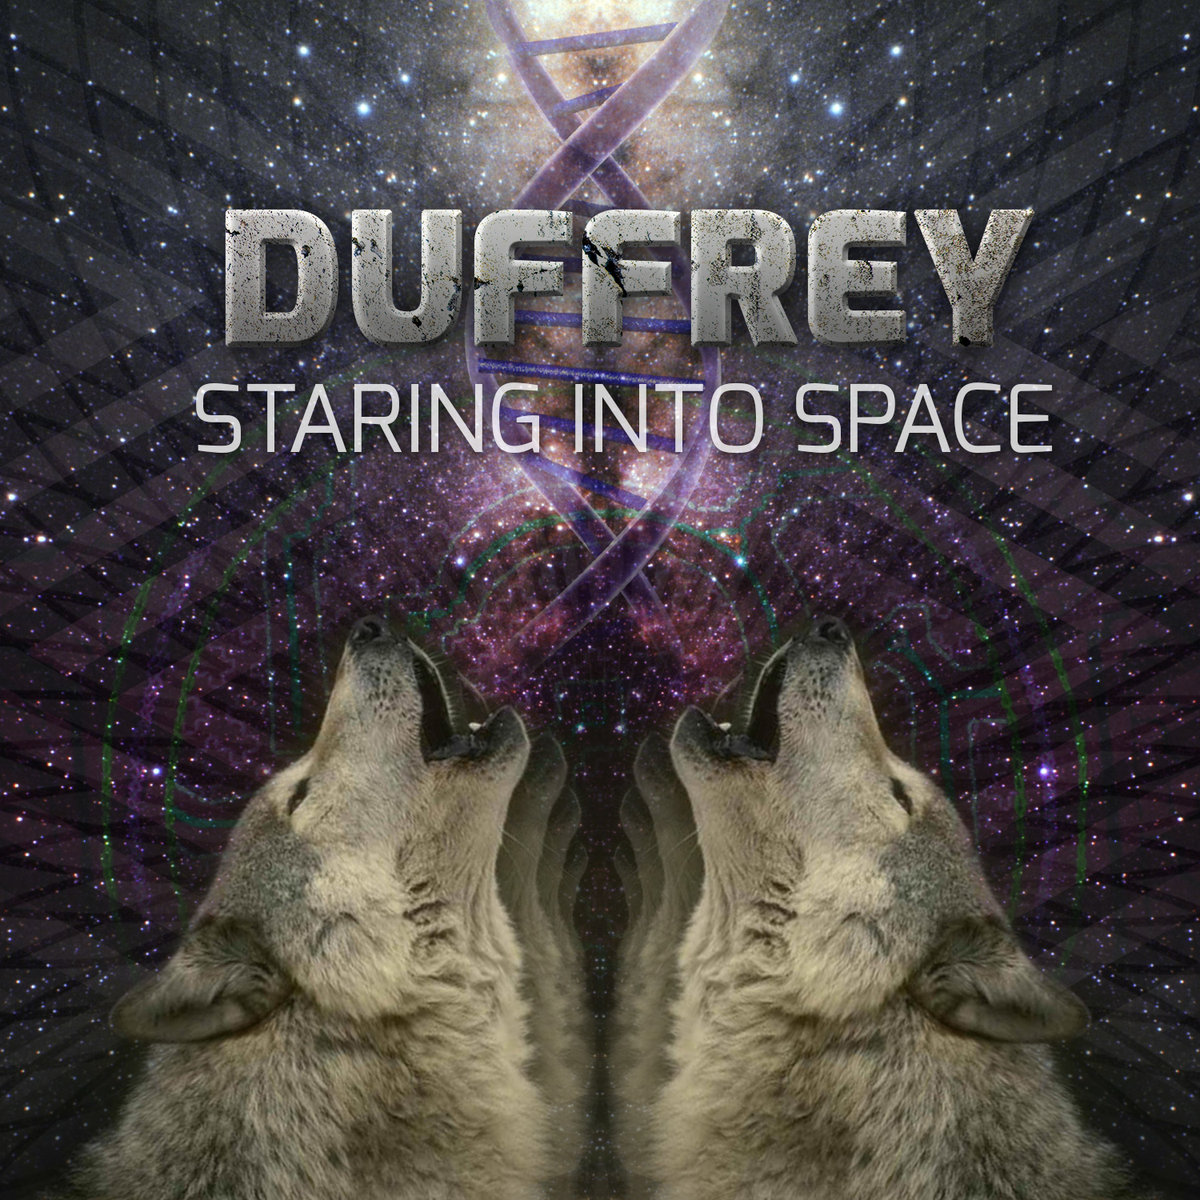 Duffrey - Staring Into Space @ 'Staring Into Space' album (bass, breaks)